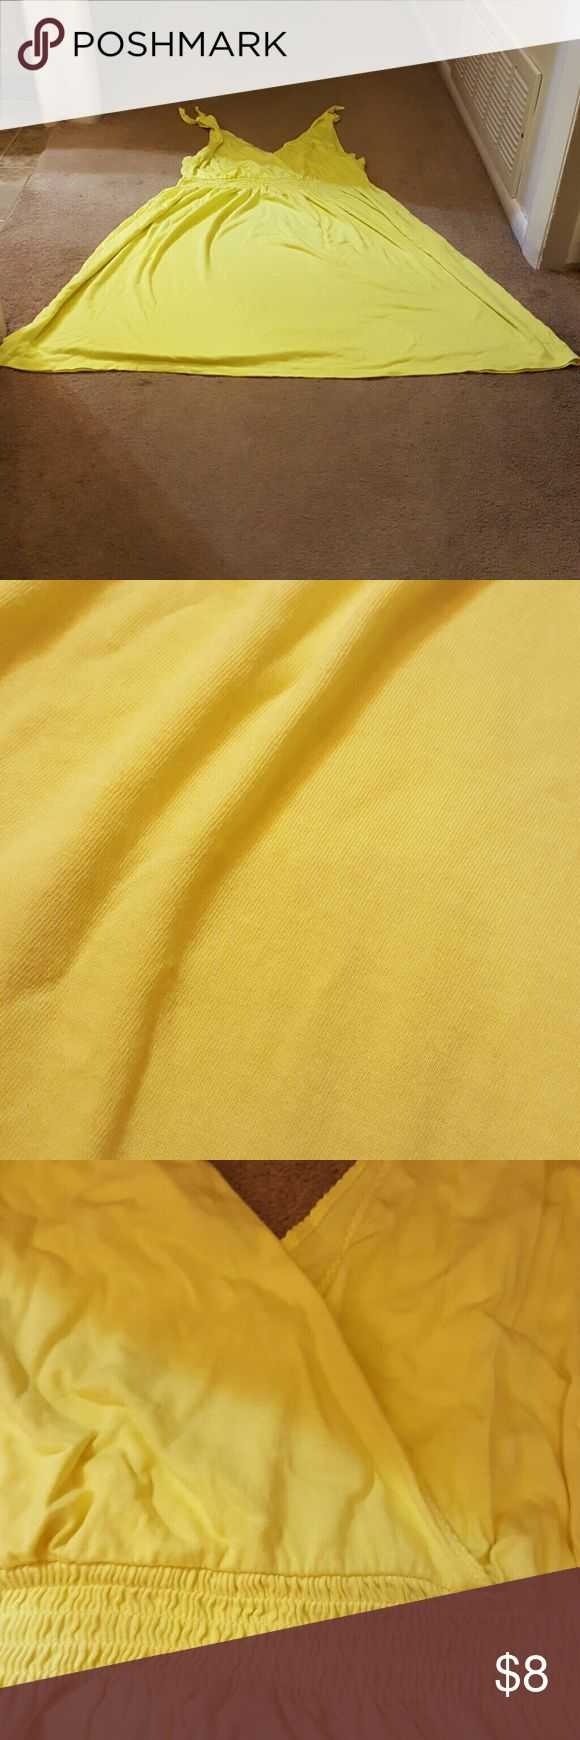 Plus Size Dress Yellow plus size Dress. No stains seen. There is a hole pictured. Pet and Smoke free. Old Navy Dresses